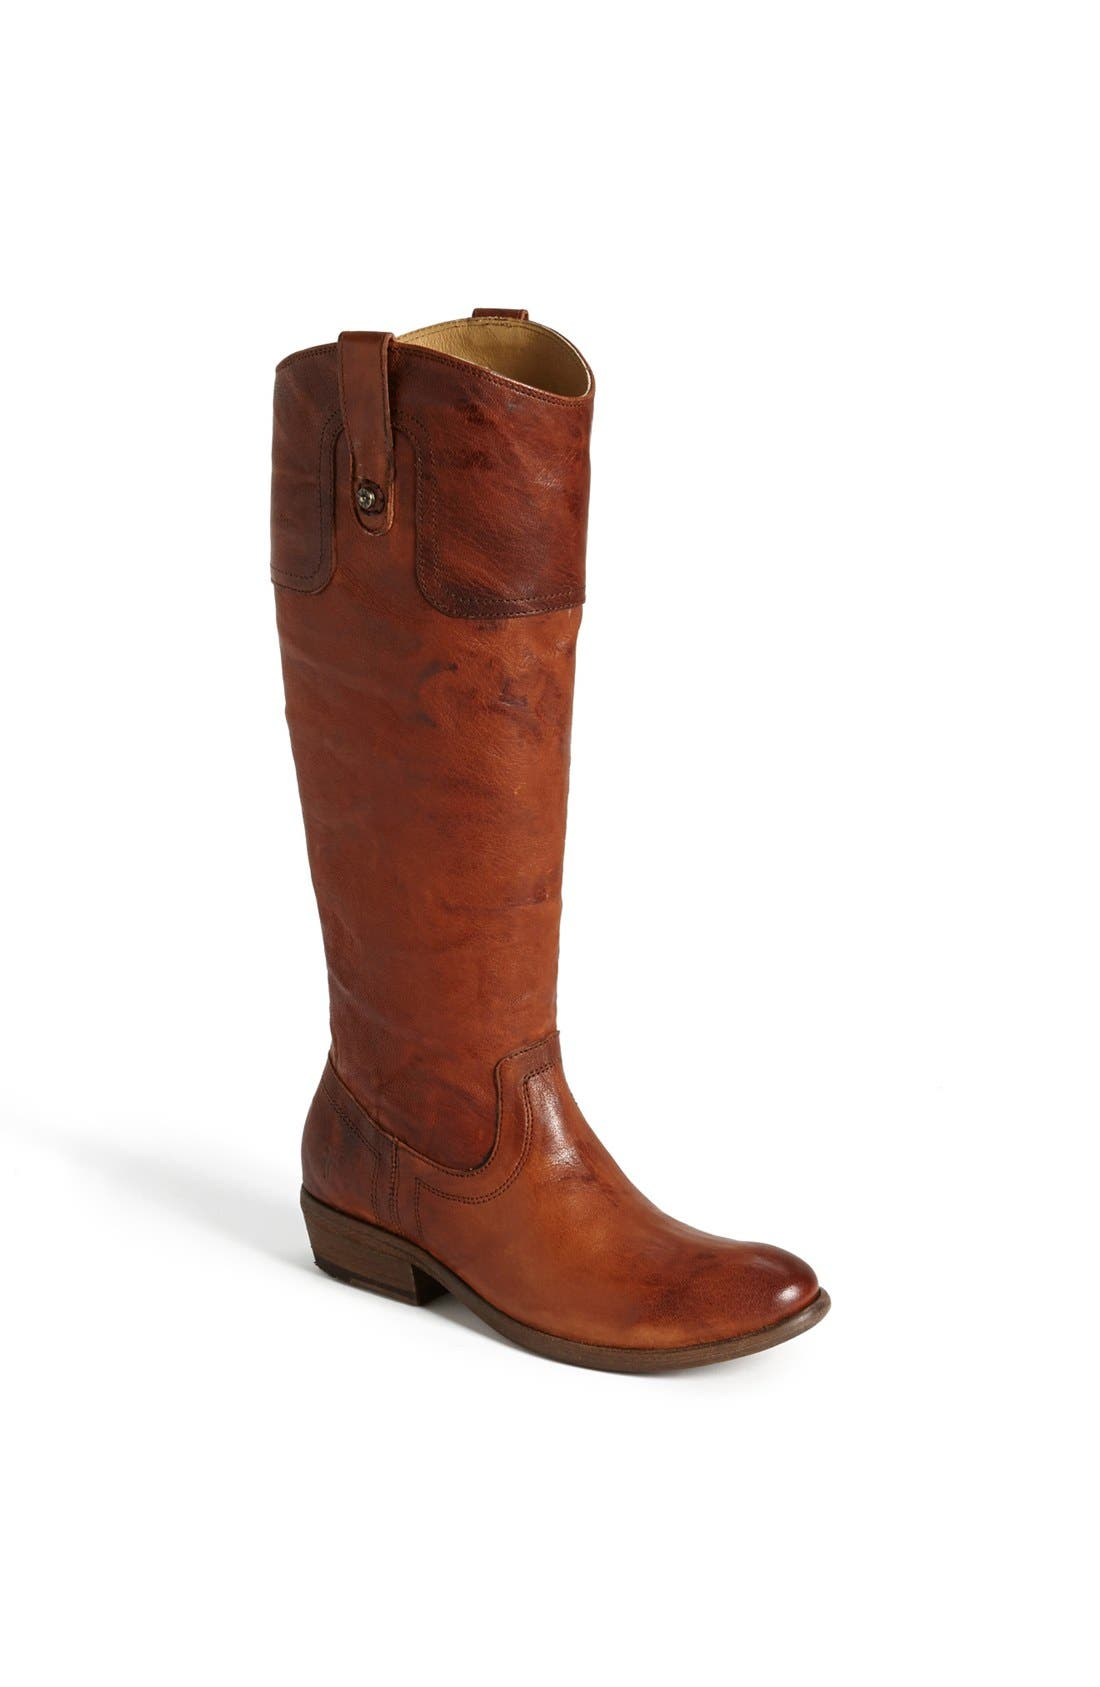 Main Image - Frye 'Carson' Tall Riding Boot